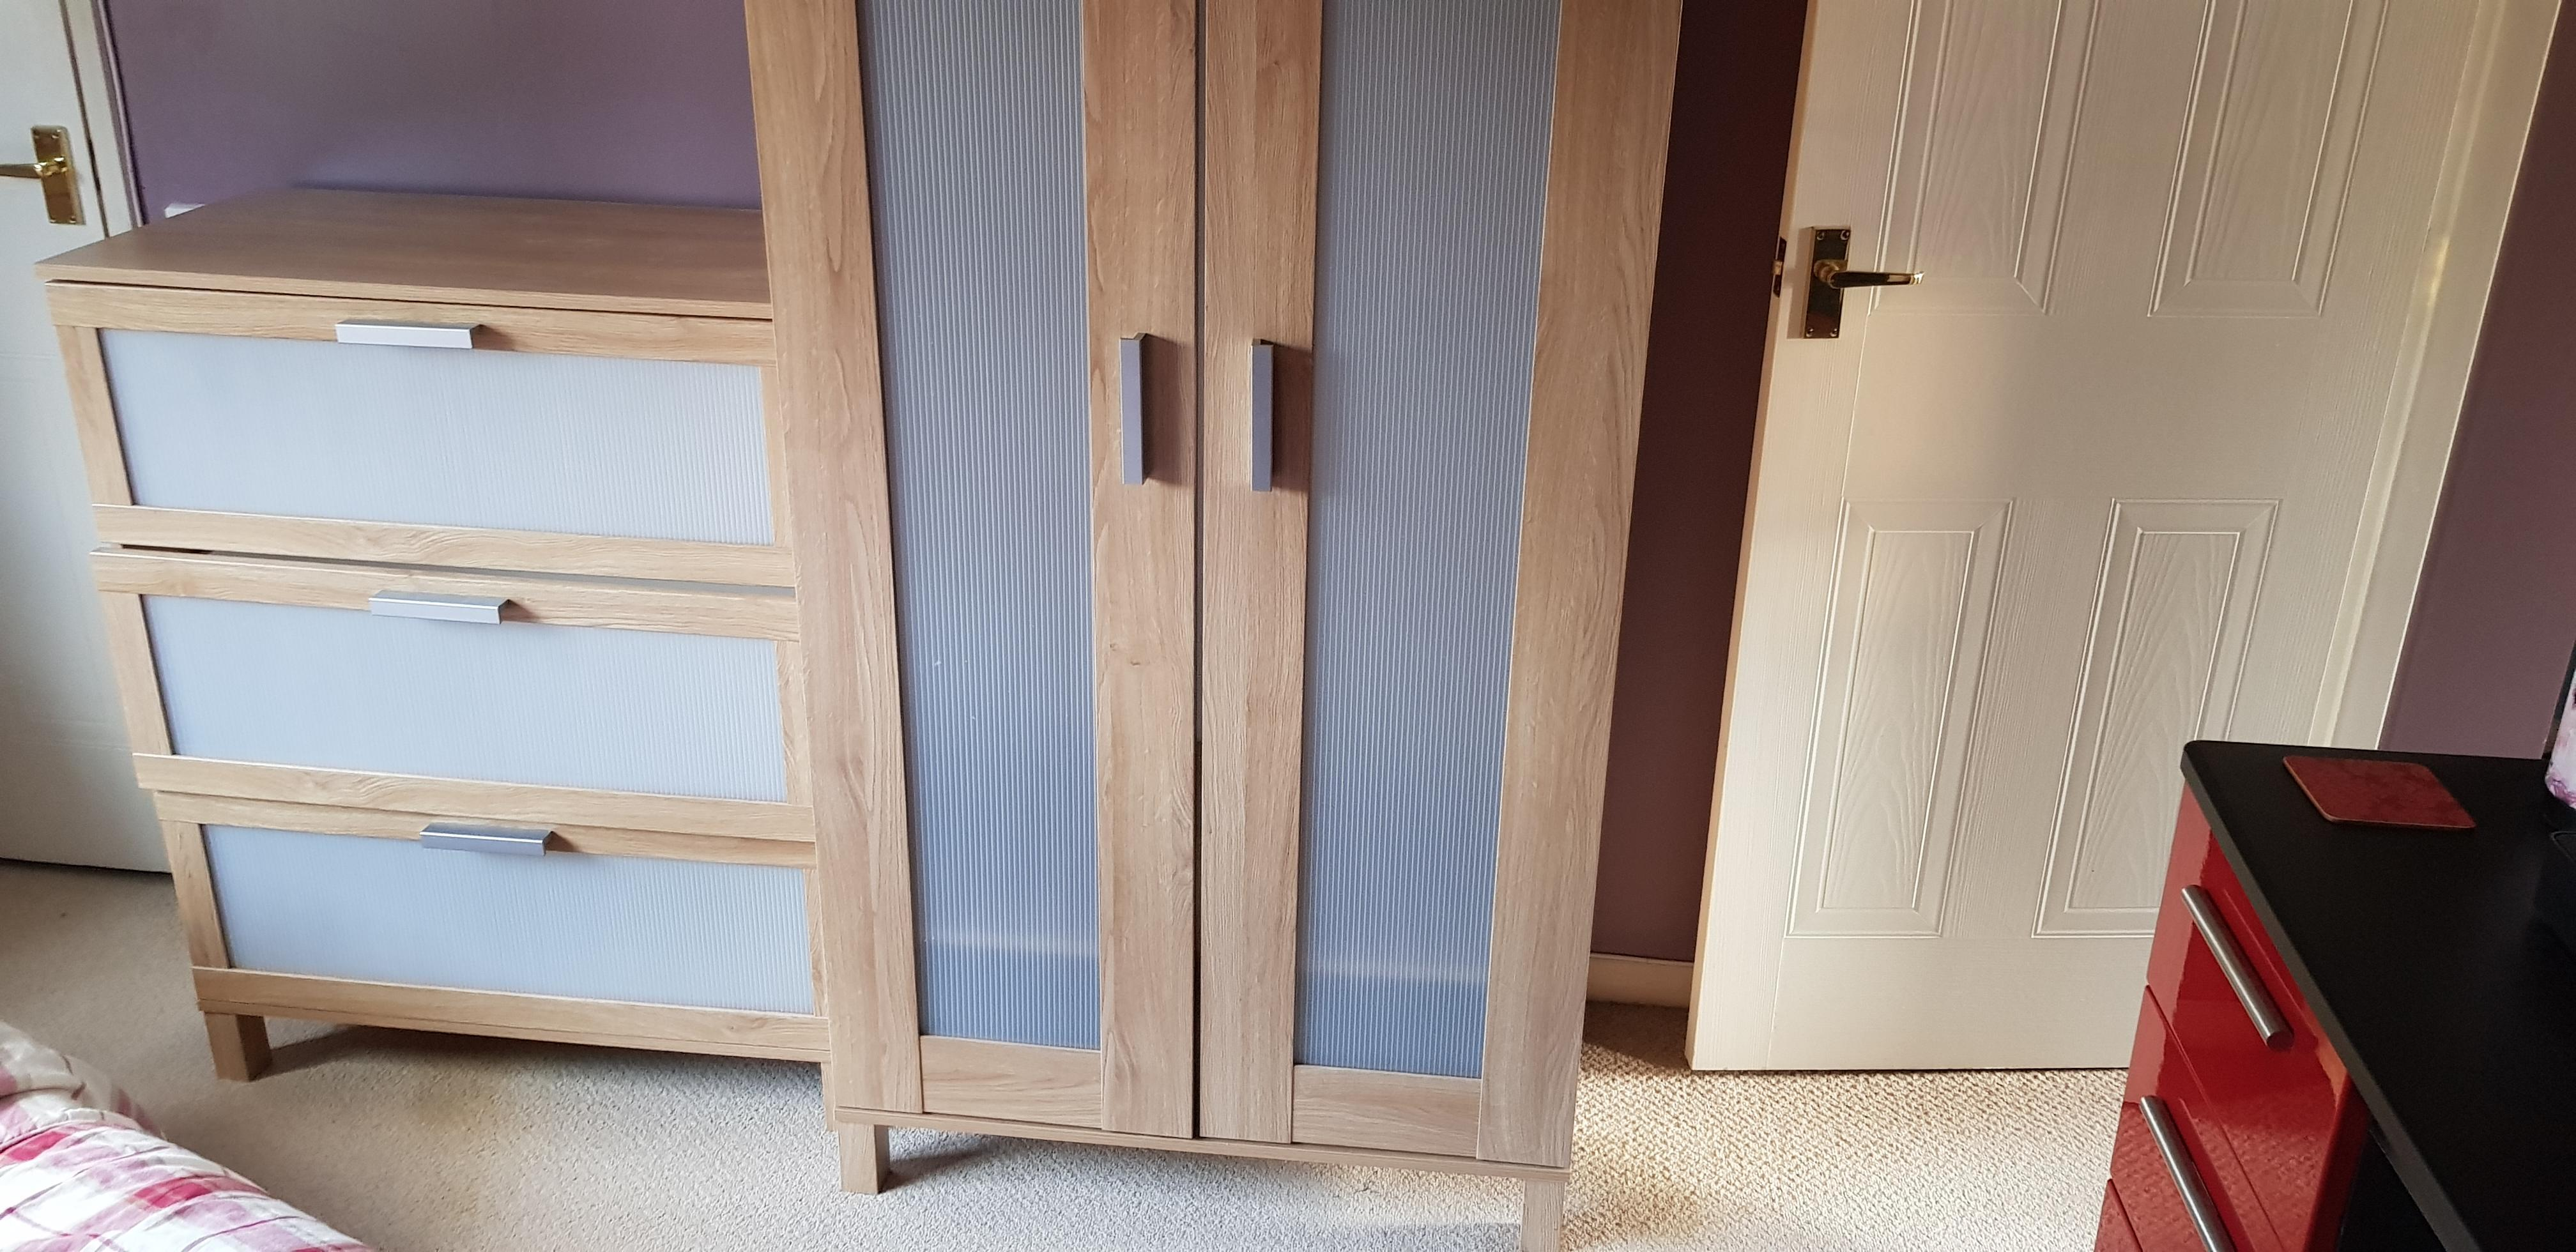 Wardrobe and Draws for sale